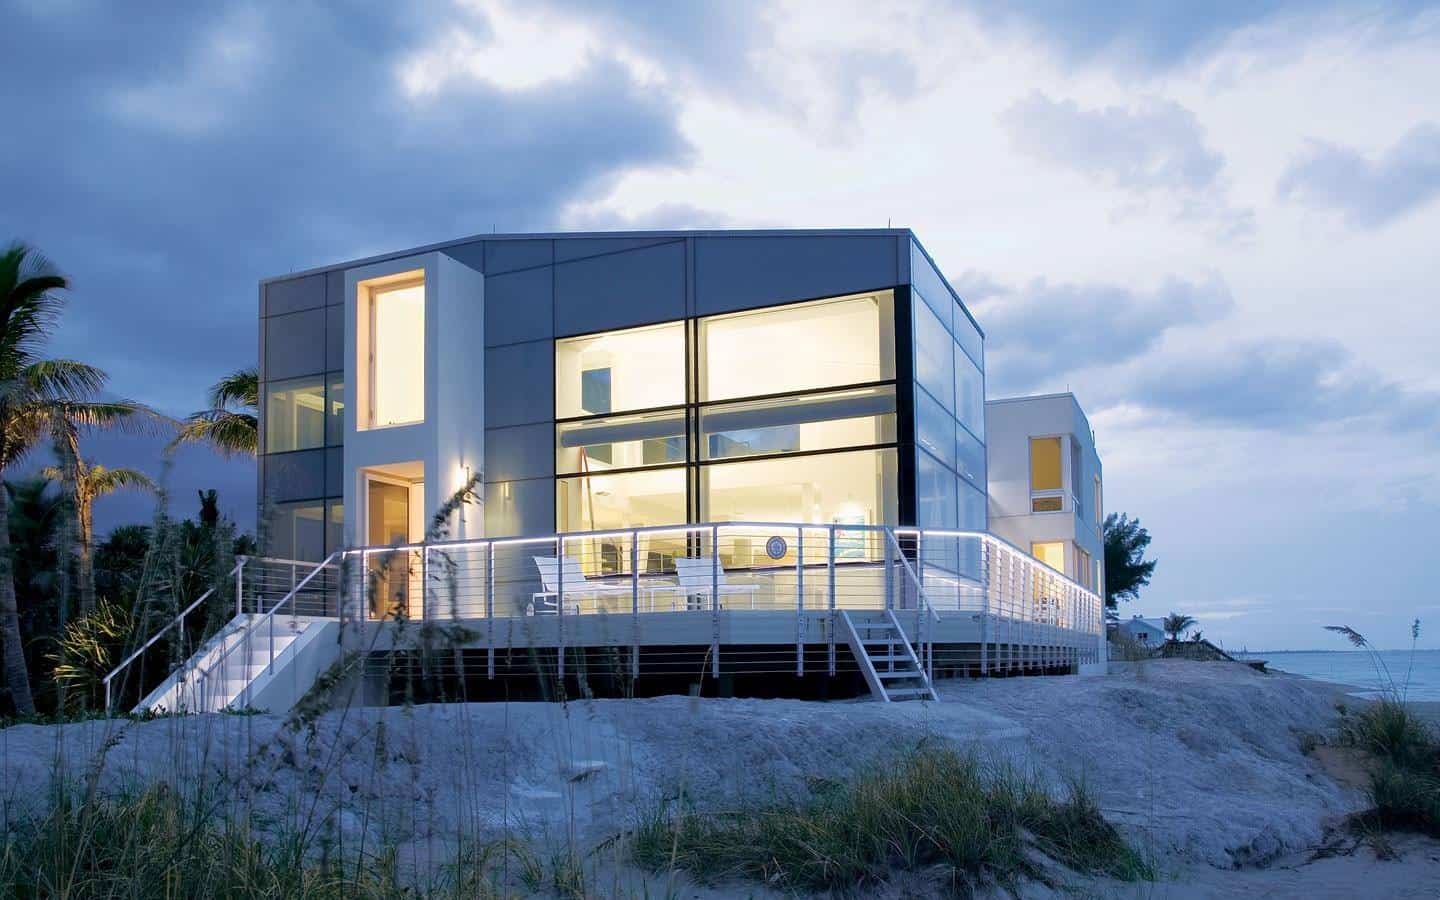 Substantial modern beach house with towering windows on all sides enjoying the view of the beach and the ocean. Designed by Hughes Umbanhowar Architects.